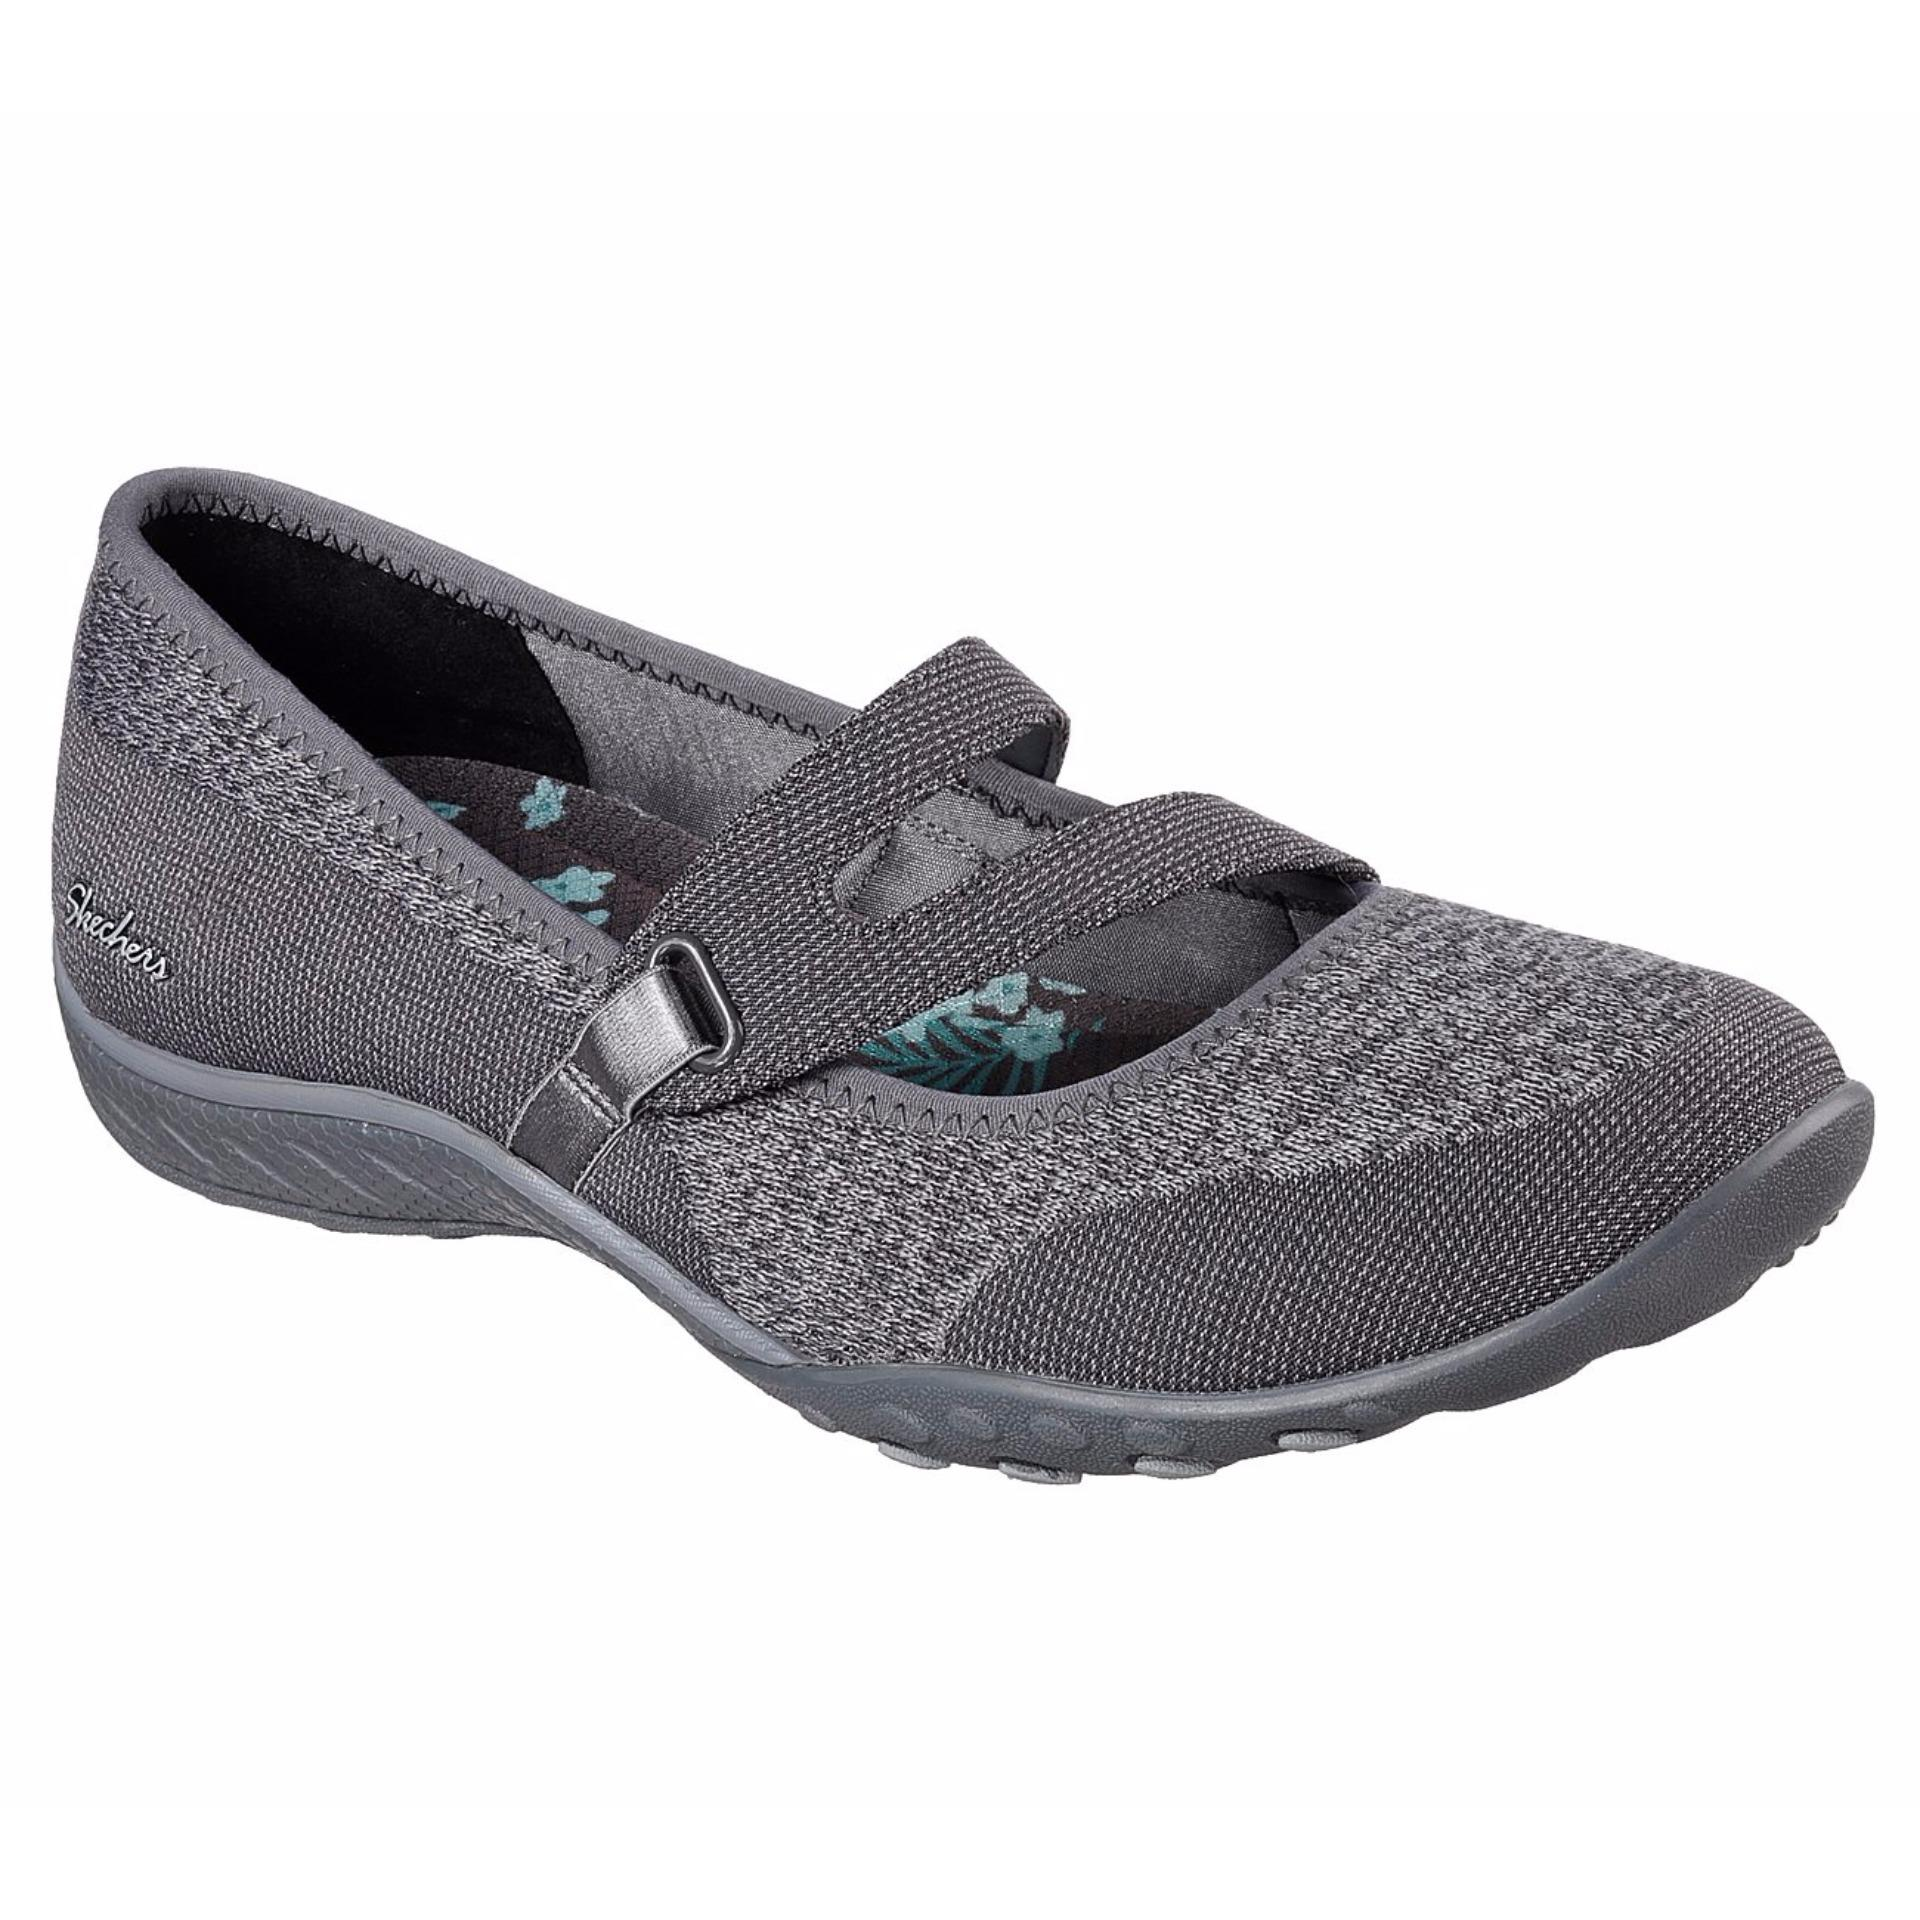 Jual Skechers Relaxed Fit Lucky Lady Abu Abu Grosir